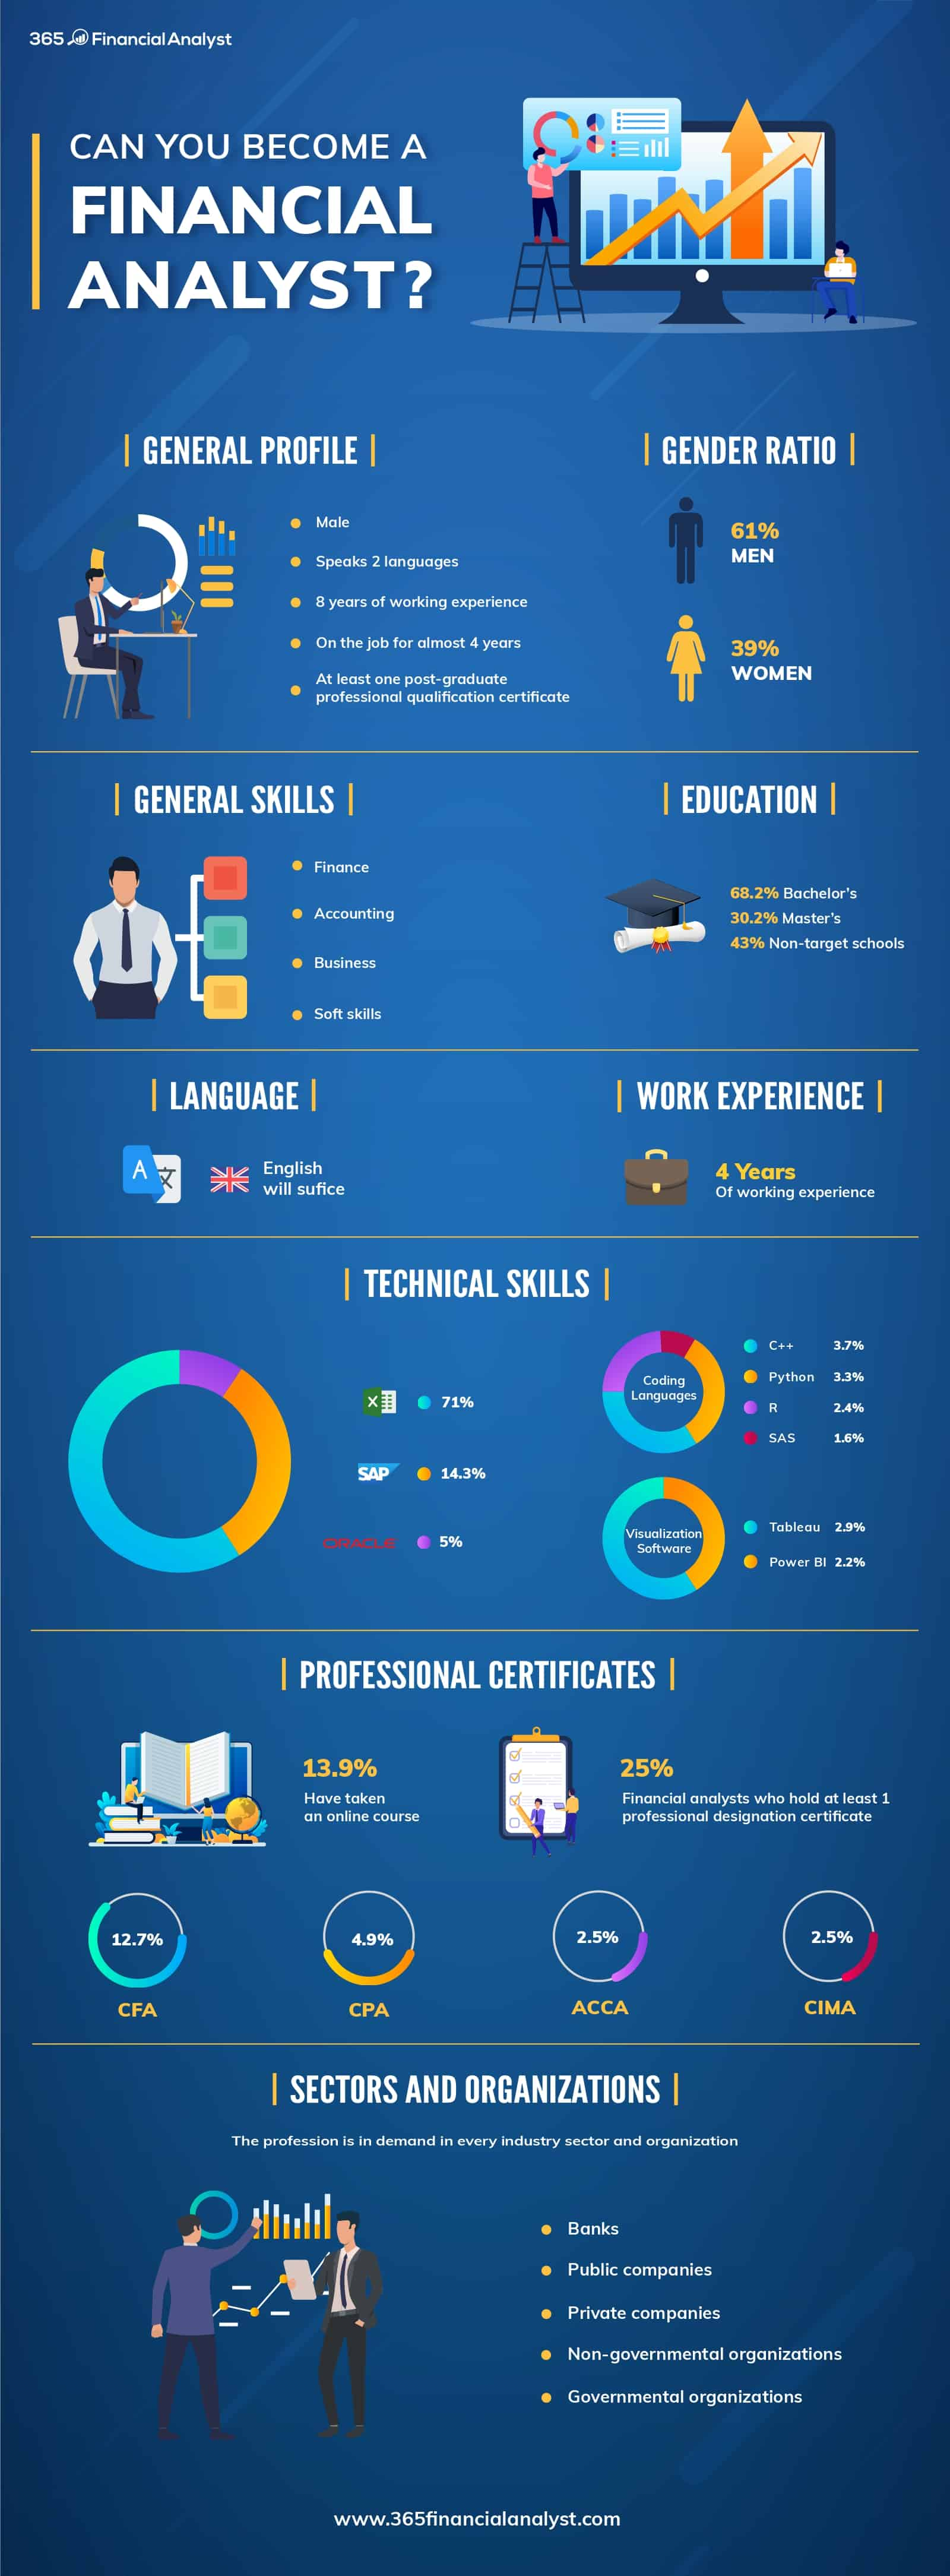 Can You Become a Financial Analyst